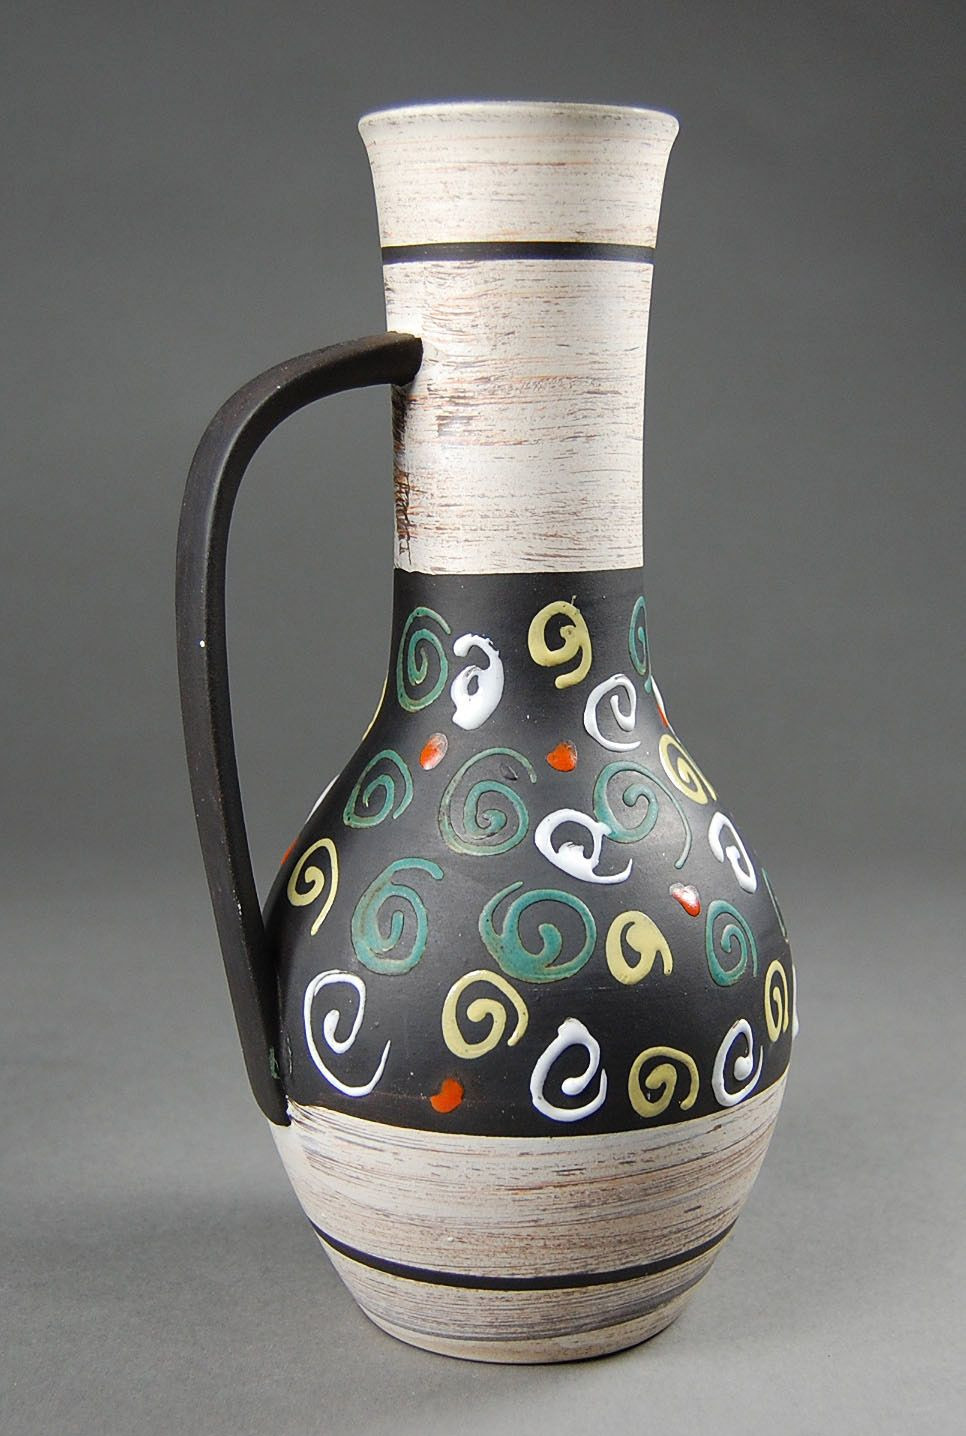 vase made in germany of carstens jug design und klassiker clay hand building projects intended for carstens jug design und klassiker clay hand building projects pinterest pottery and pottery vase